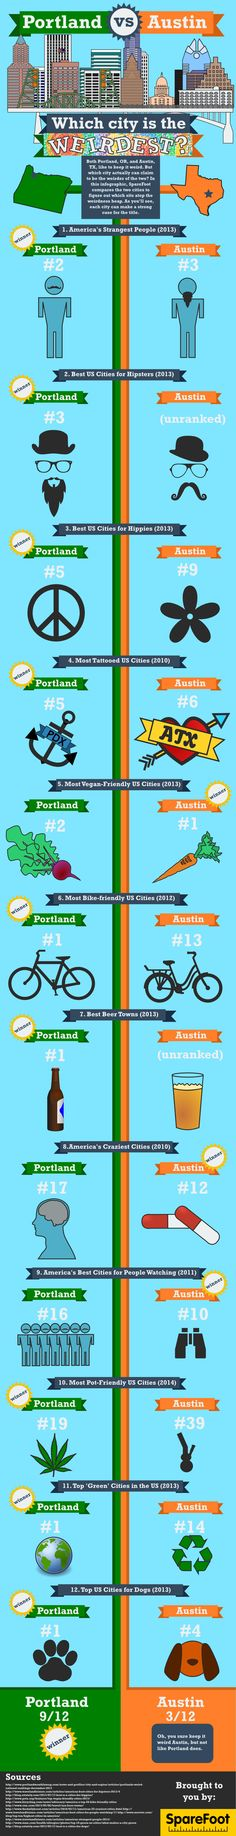 With offices in both Portland and Austin, clearly we think weird is pretty great